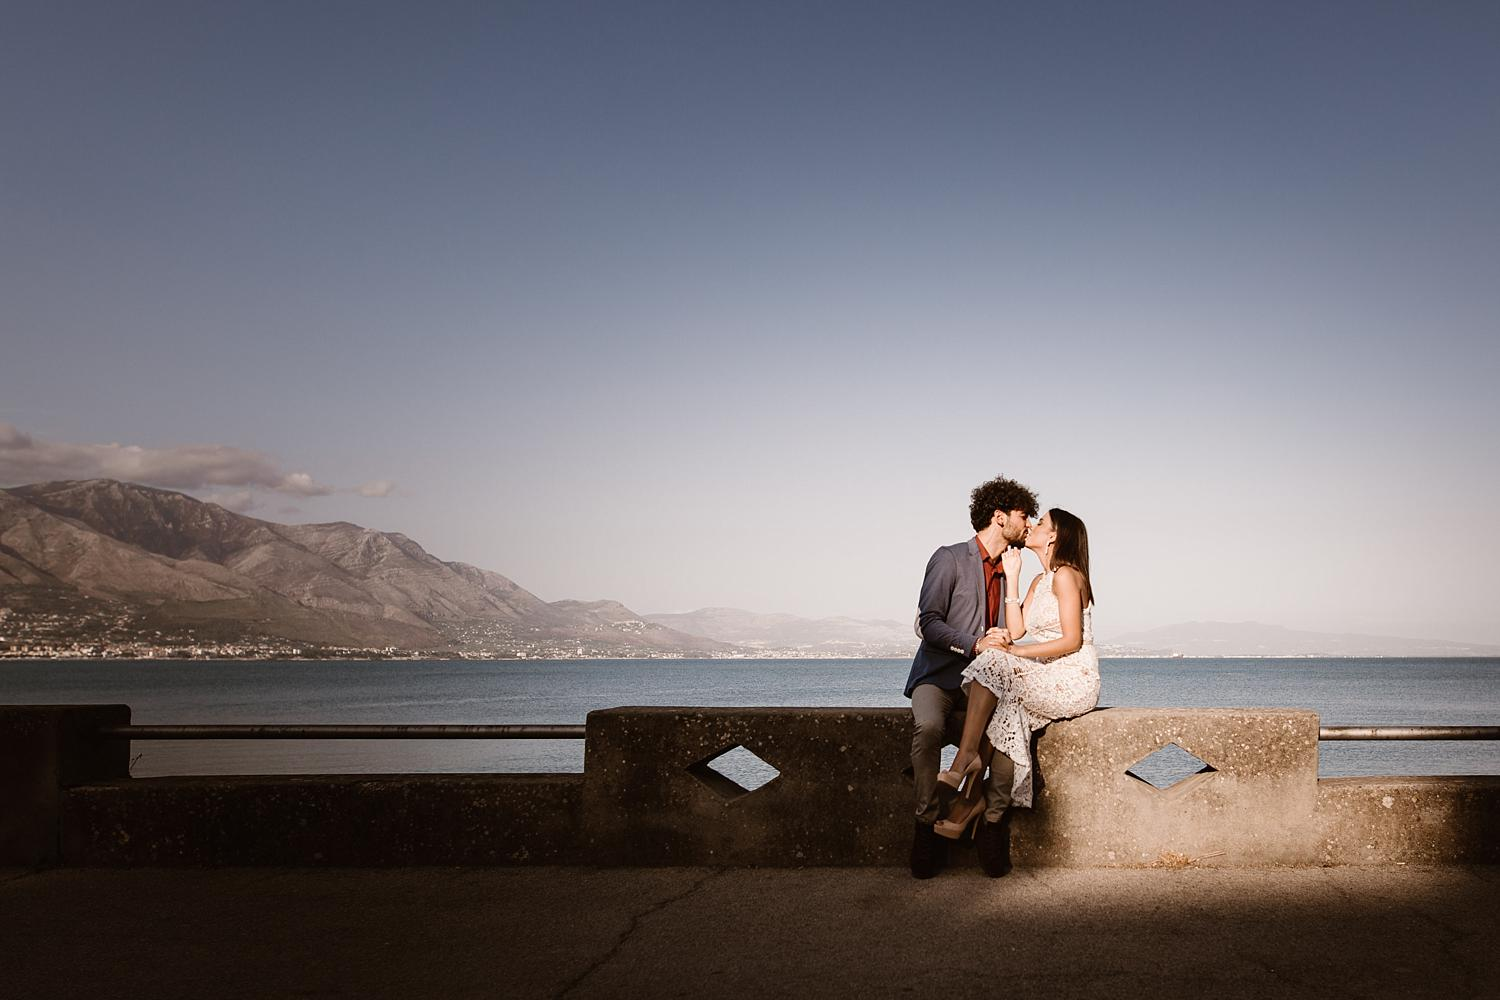 mf weddingphotographer rome 15 - Marika & Franklin - Intimate Session in Gaeta